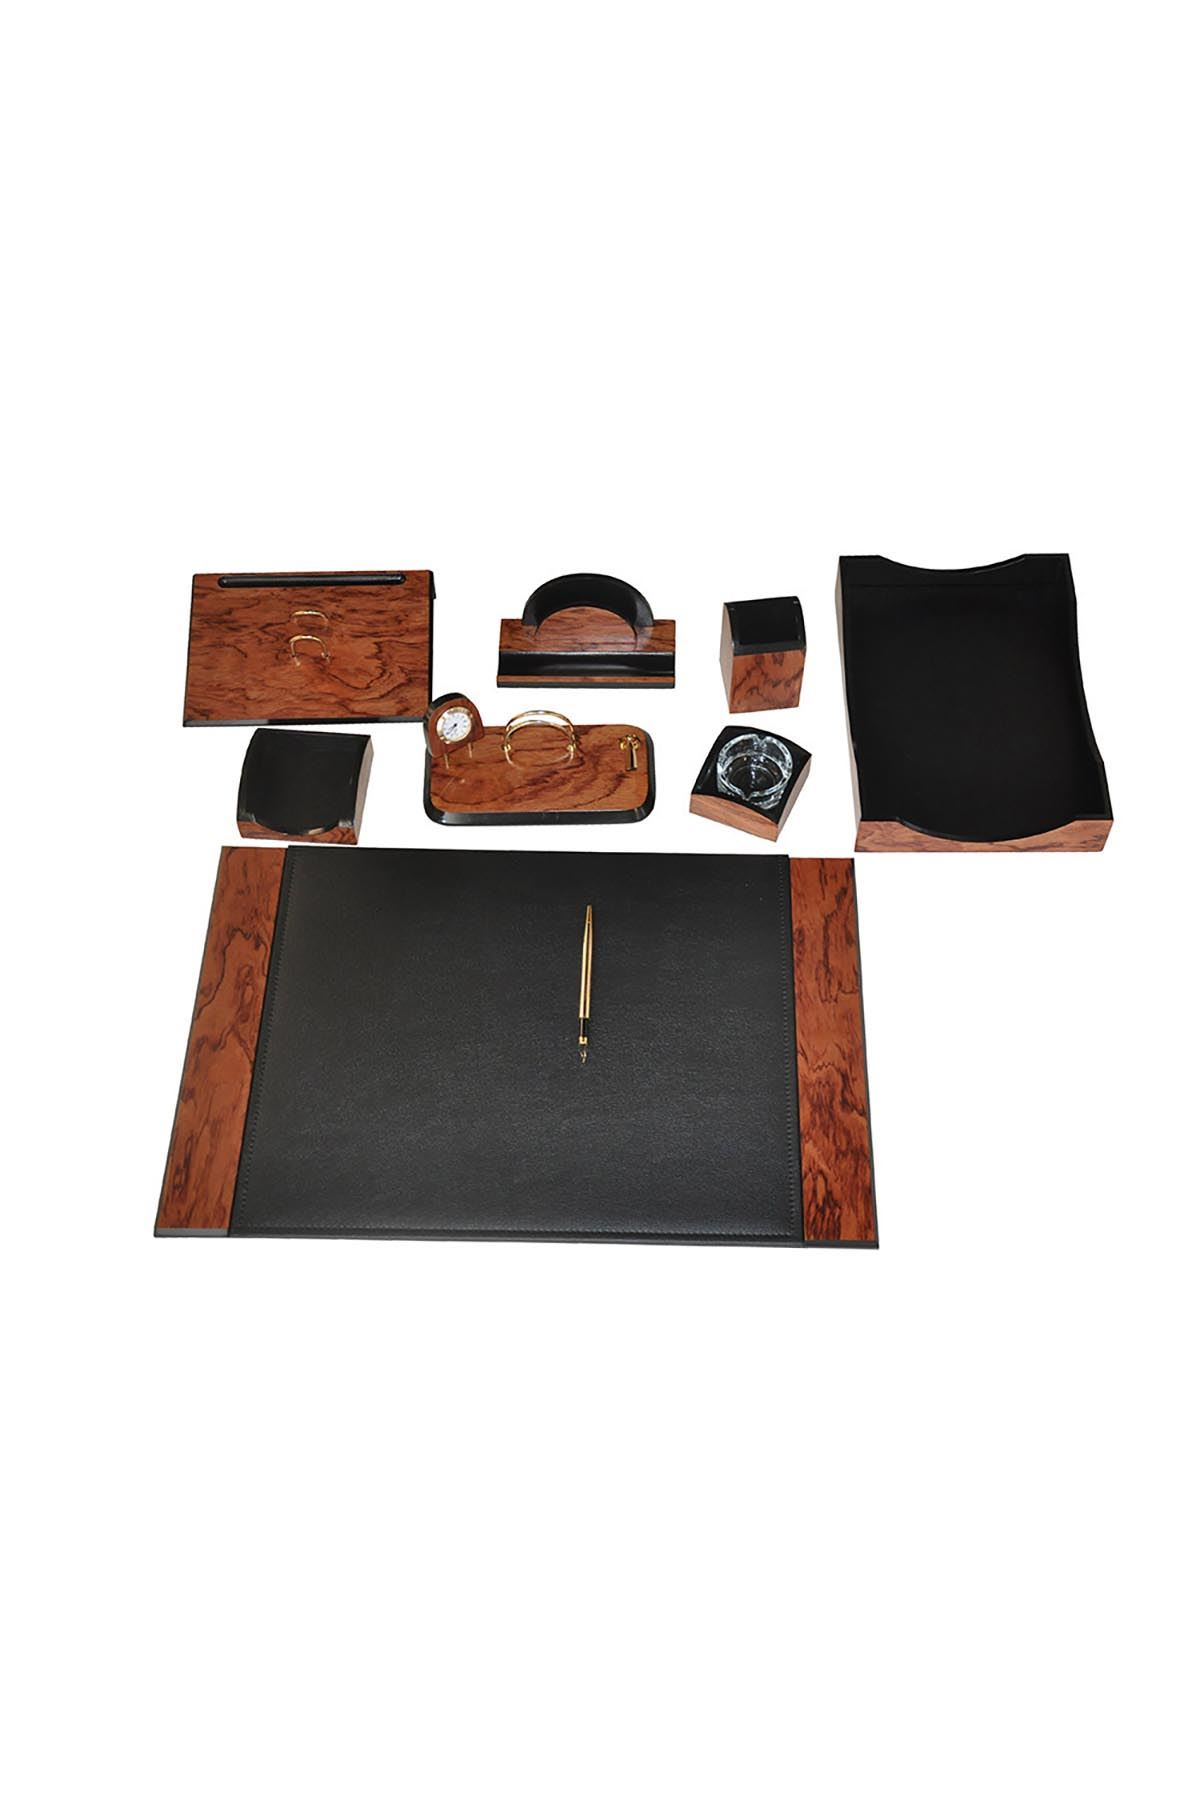 Wooden Karizma Desk Set Rose Black 9 Accessories